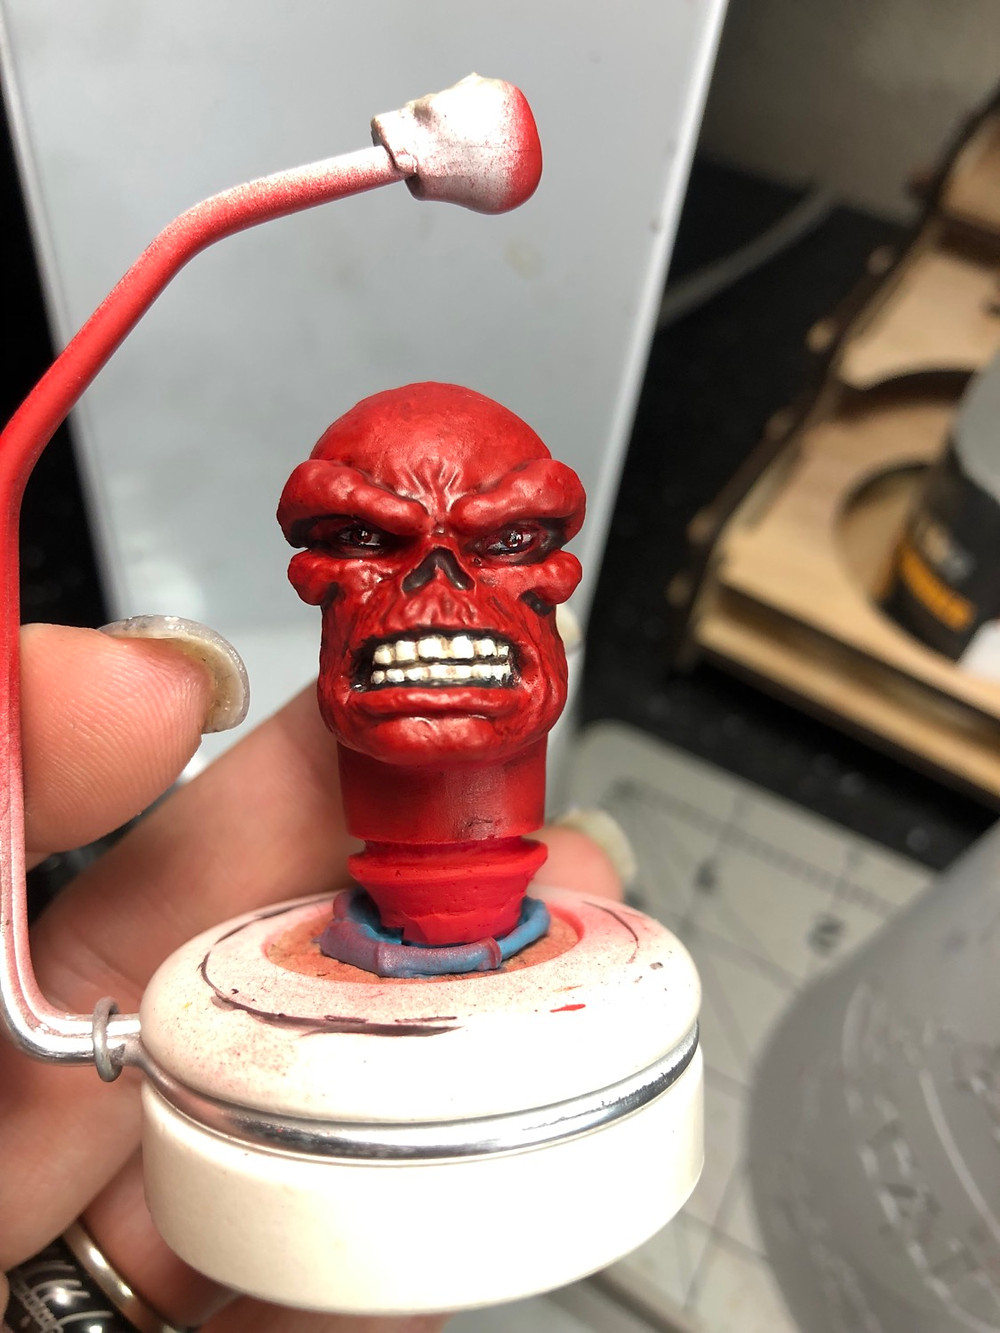 Completed Mego Red Skull head